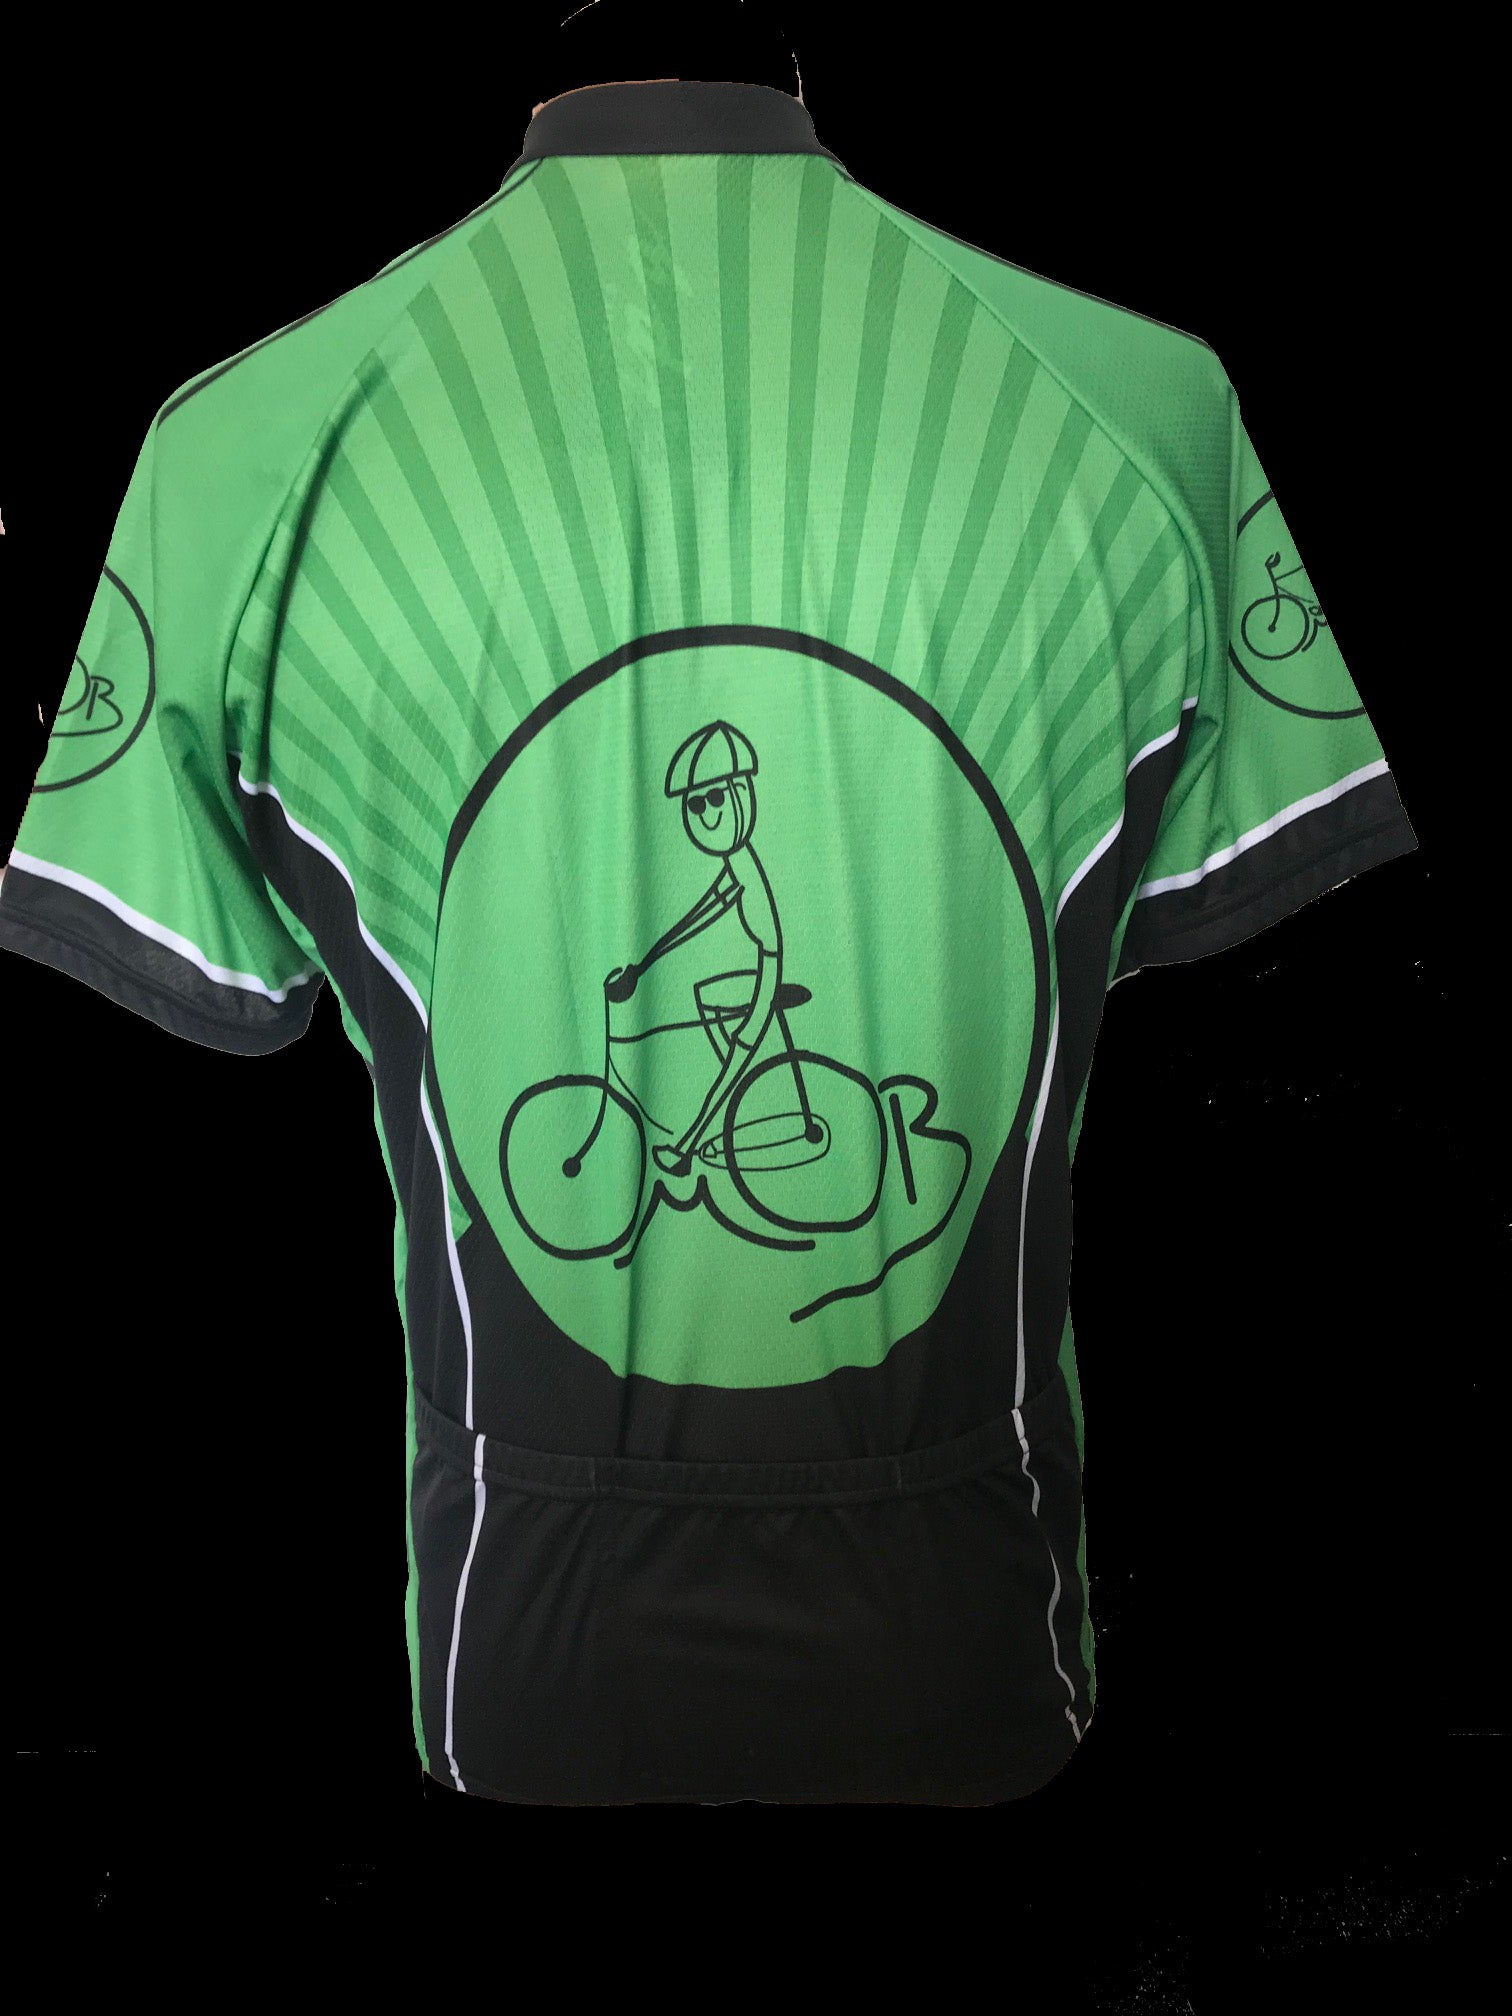 Old Man On Bike Jersey